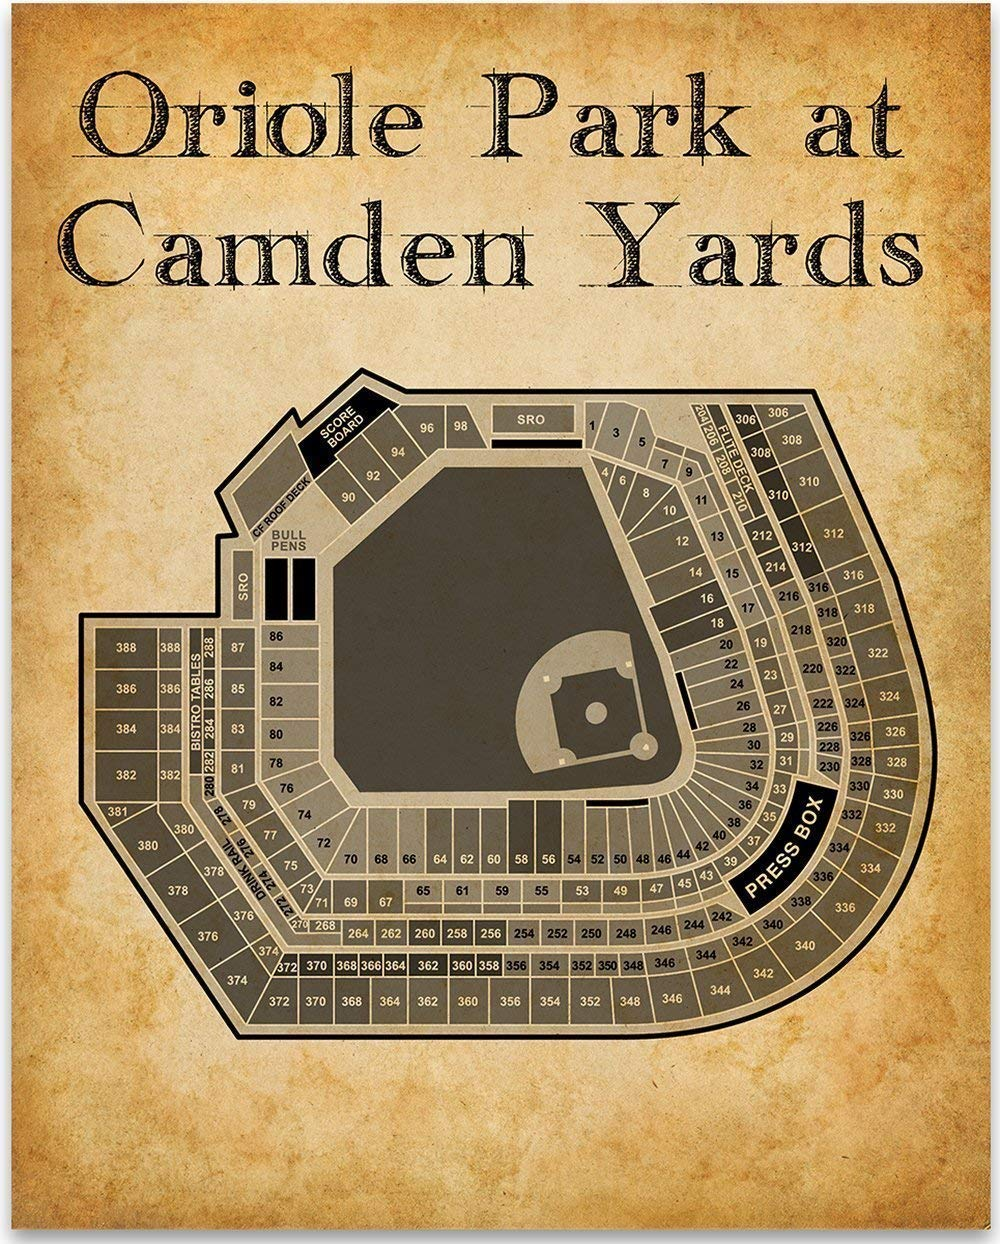 Oriole Park At Camden Yards Baseball Seating Chart 11x14 Unframed Art Print Great Sports Bar Decor And Gift Under 15 For Baseball Fans